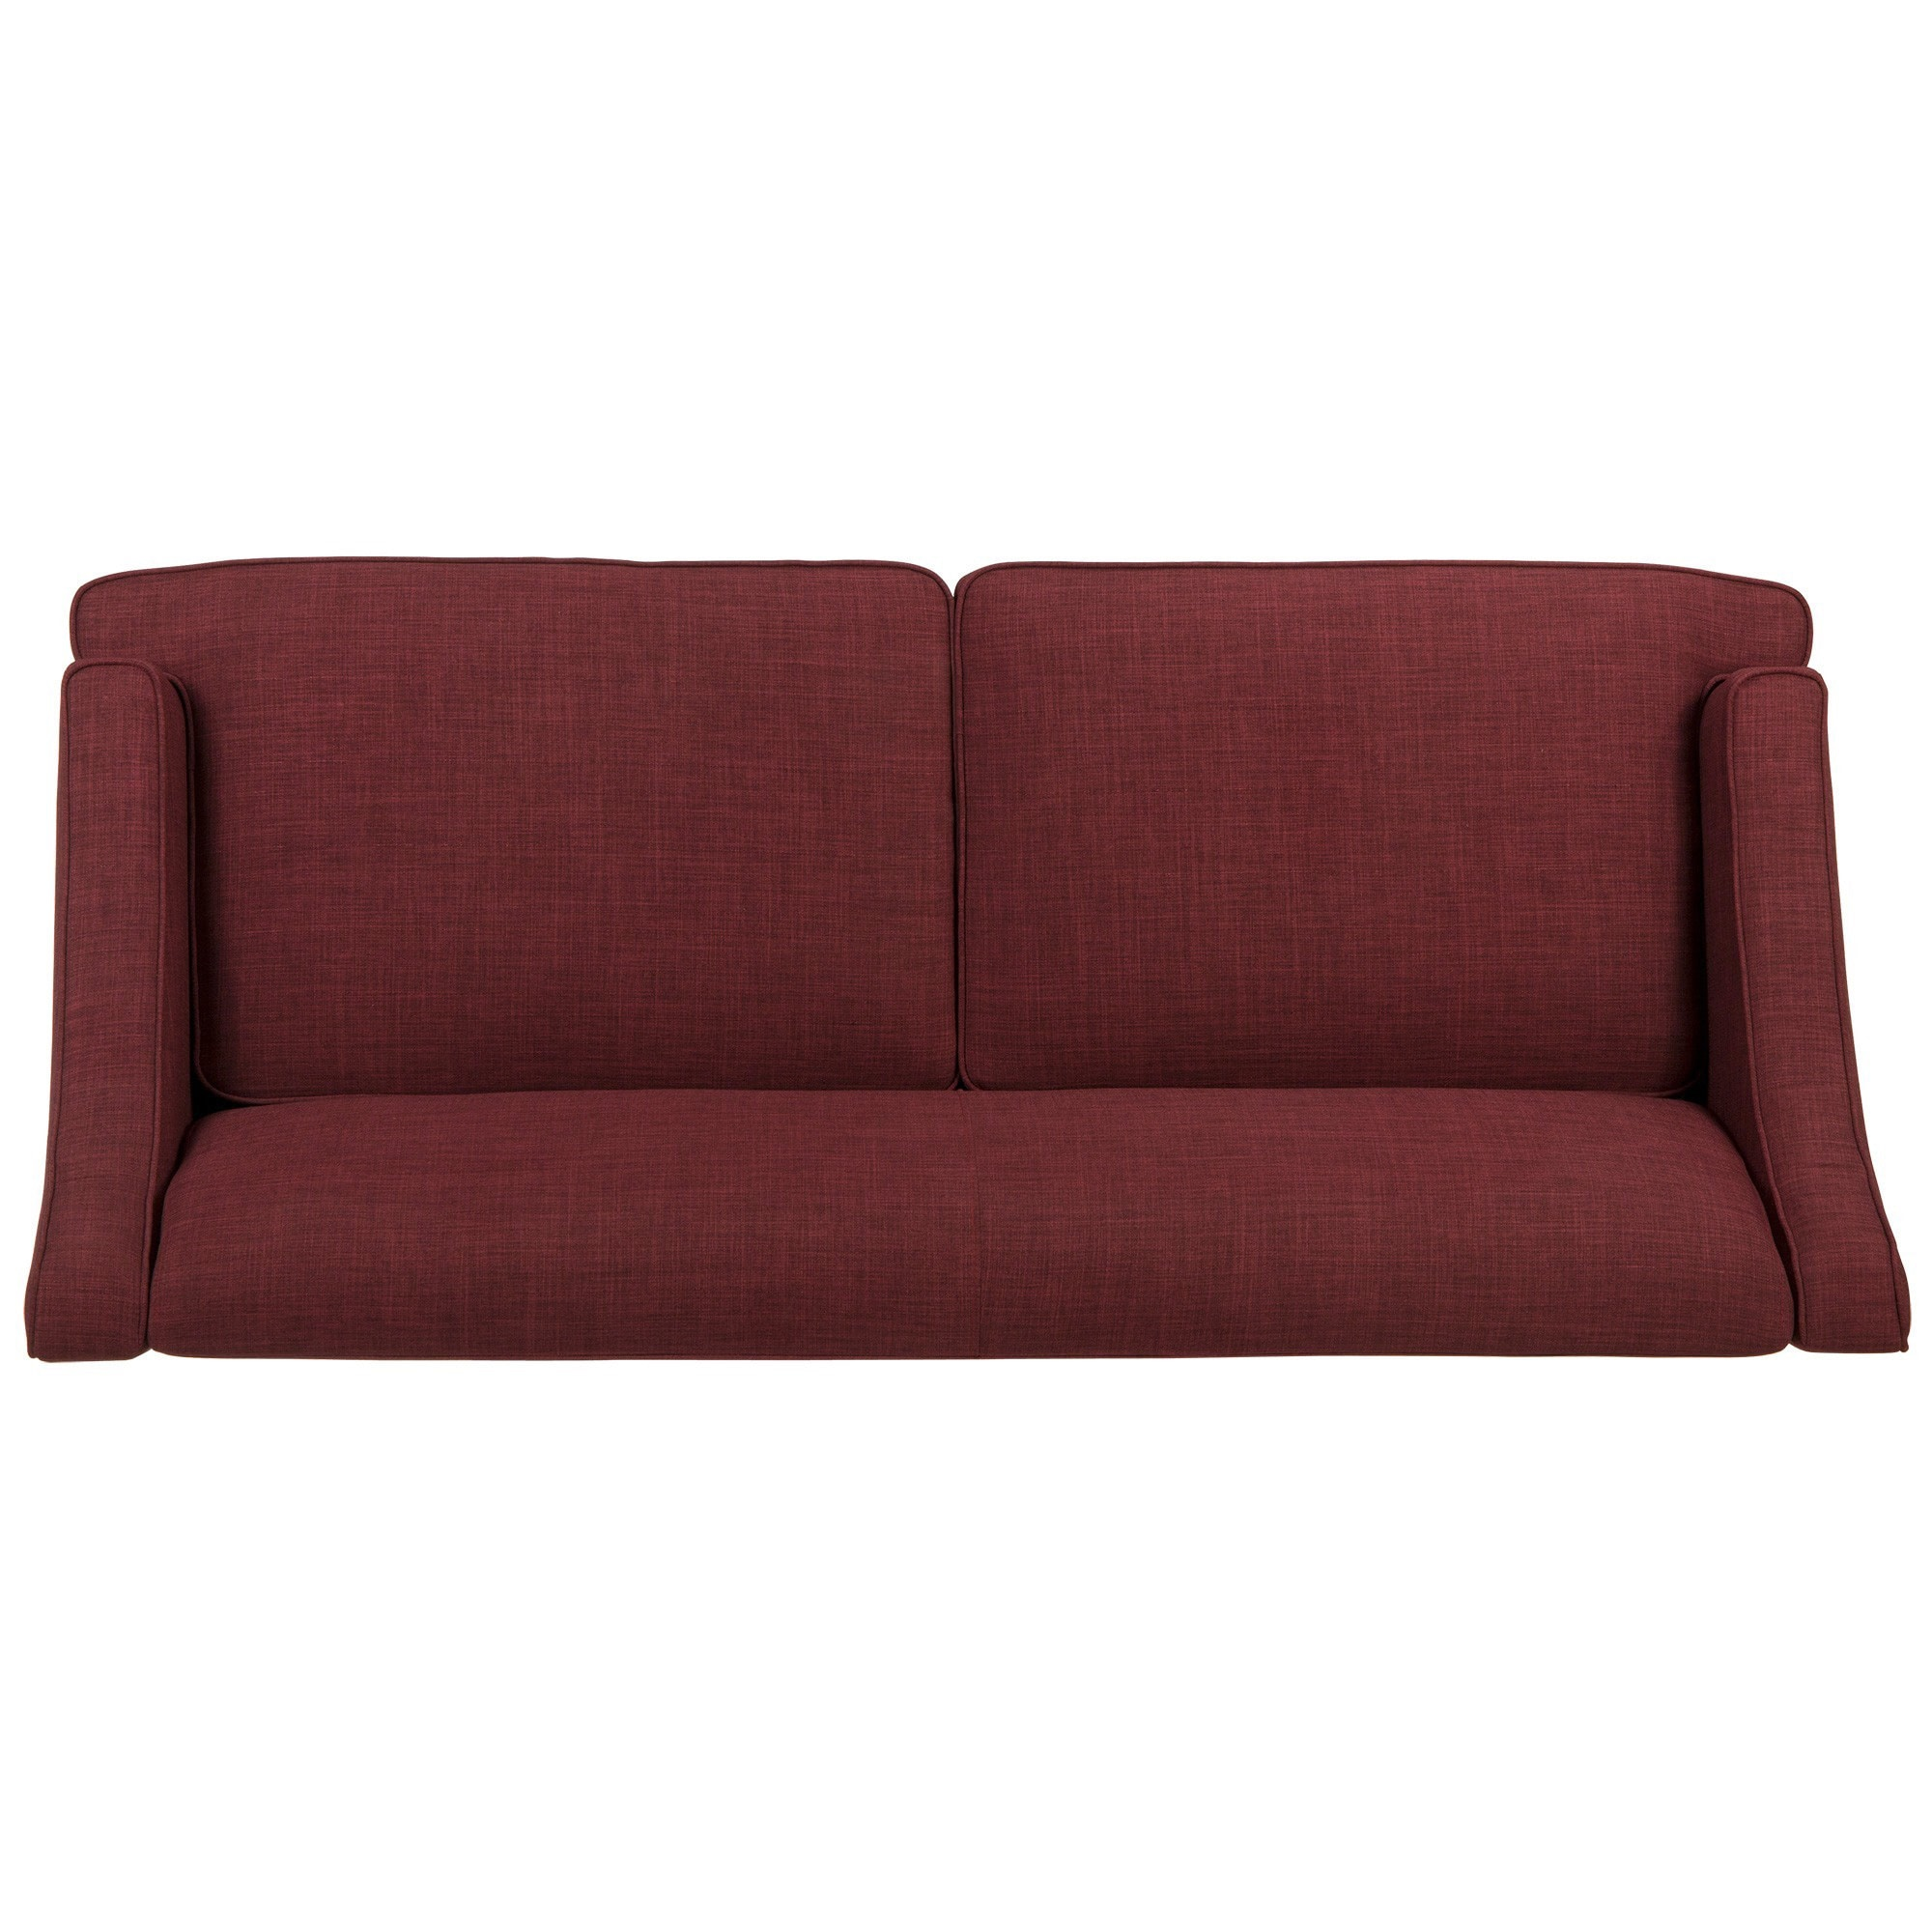 56f2b0042a Shop Winslow Concave Arm Modern Sofa by iNSPIRE Q Bold - On Sale - Free  Shipping Today - Overstock - 6223601